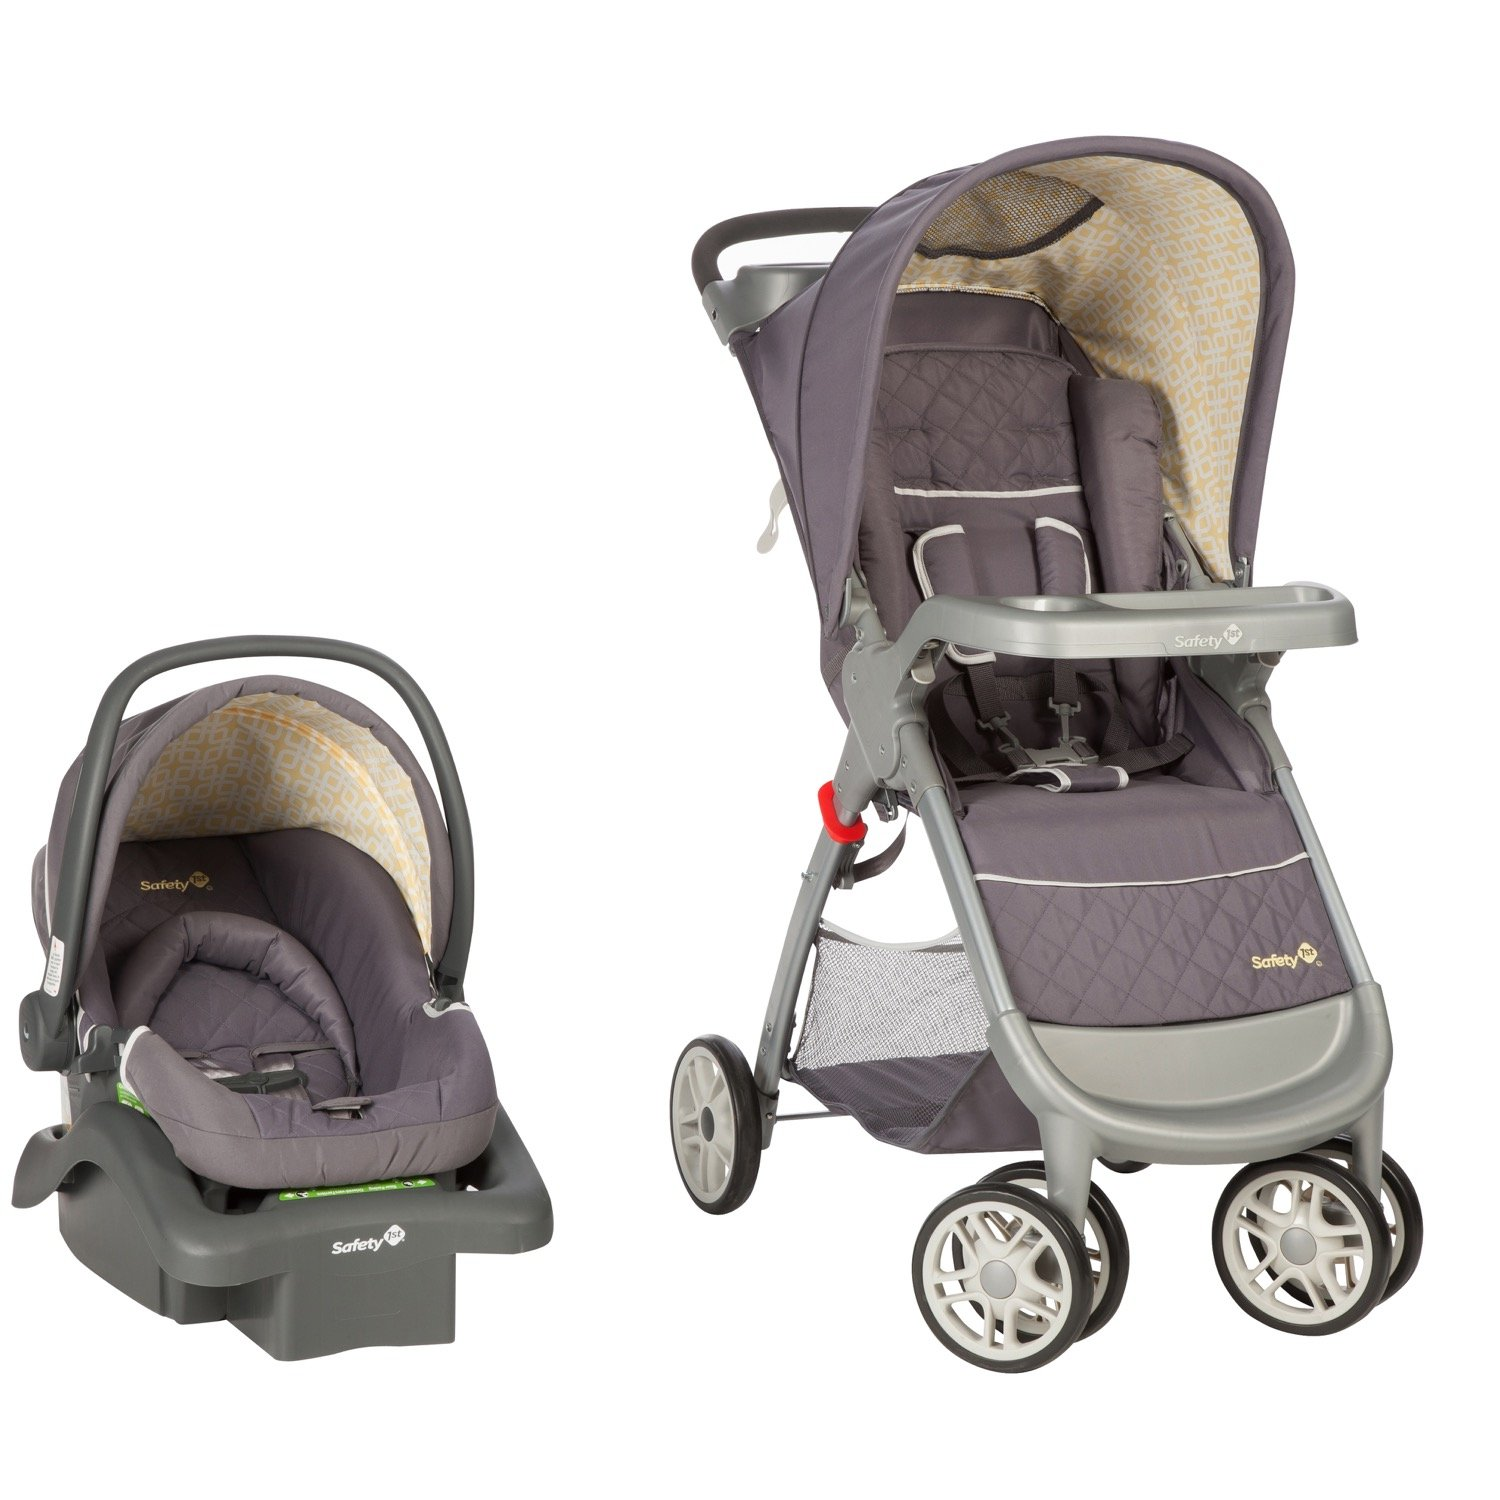 Safety 1st Amble Quad Travel System - Bromley Safety1st 01281CBRL